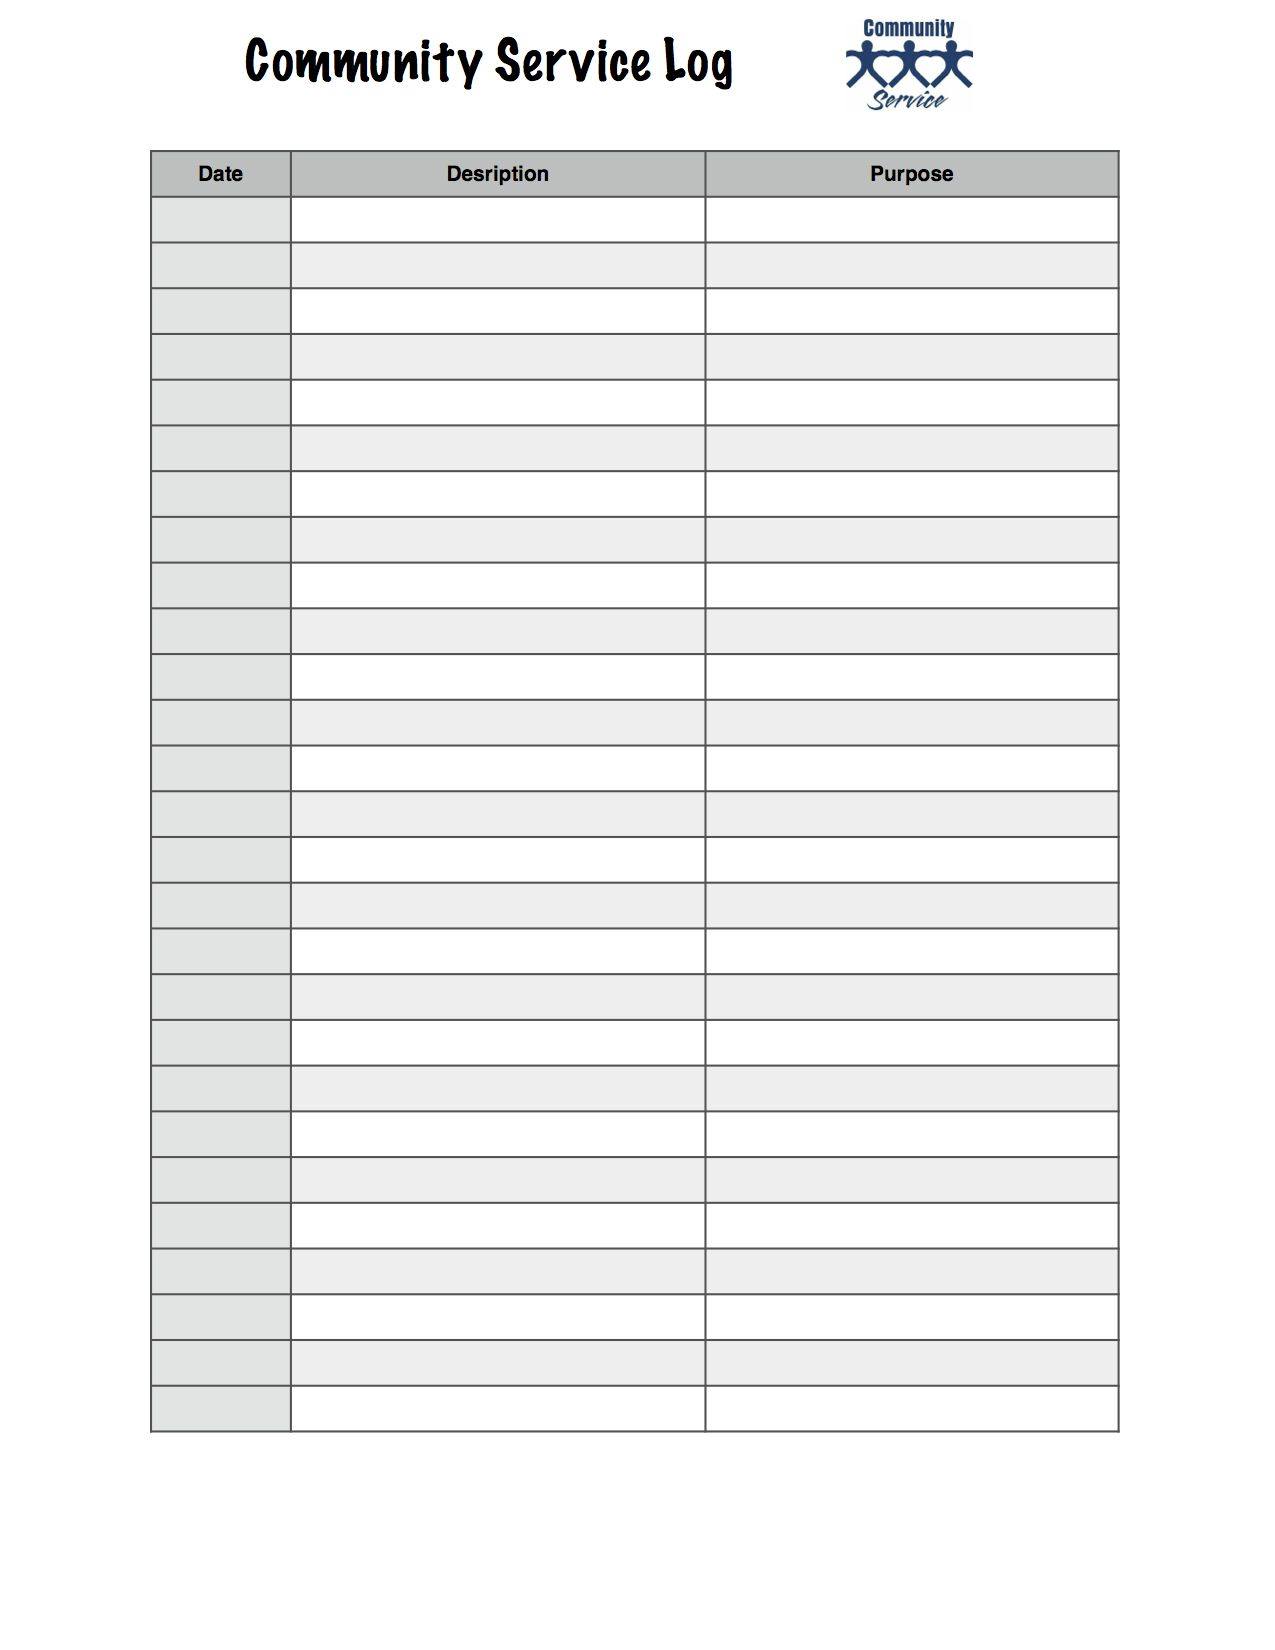 Worksheet I Made Up For Keeping Track Of Community Service